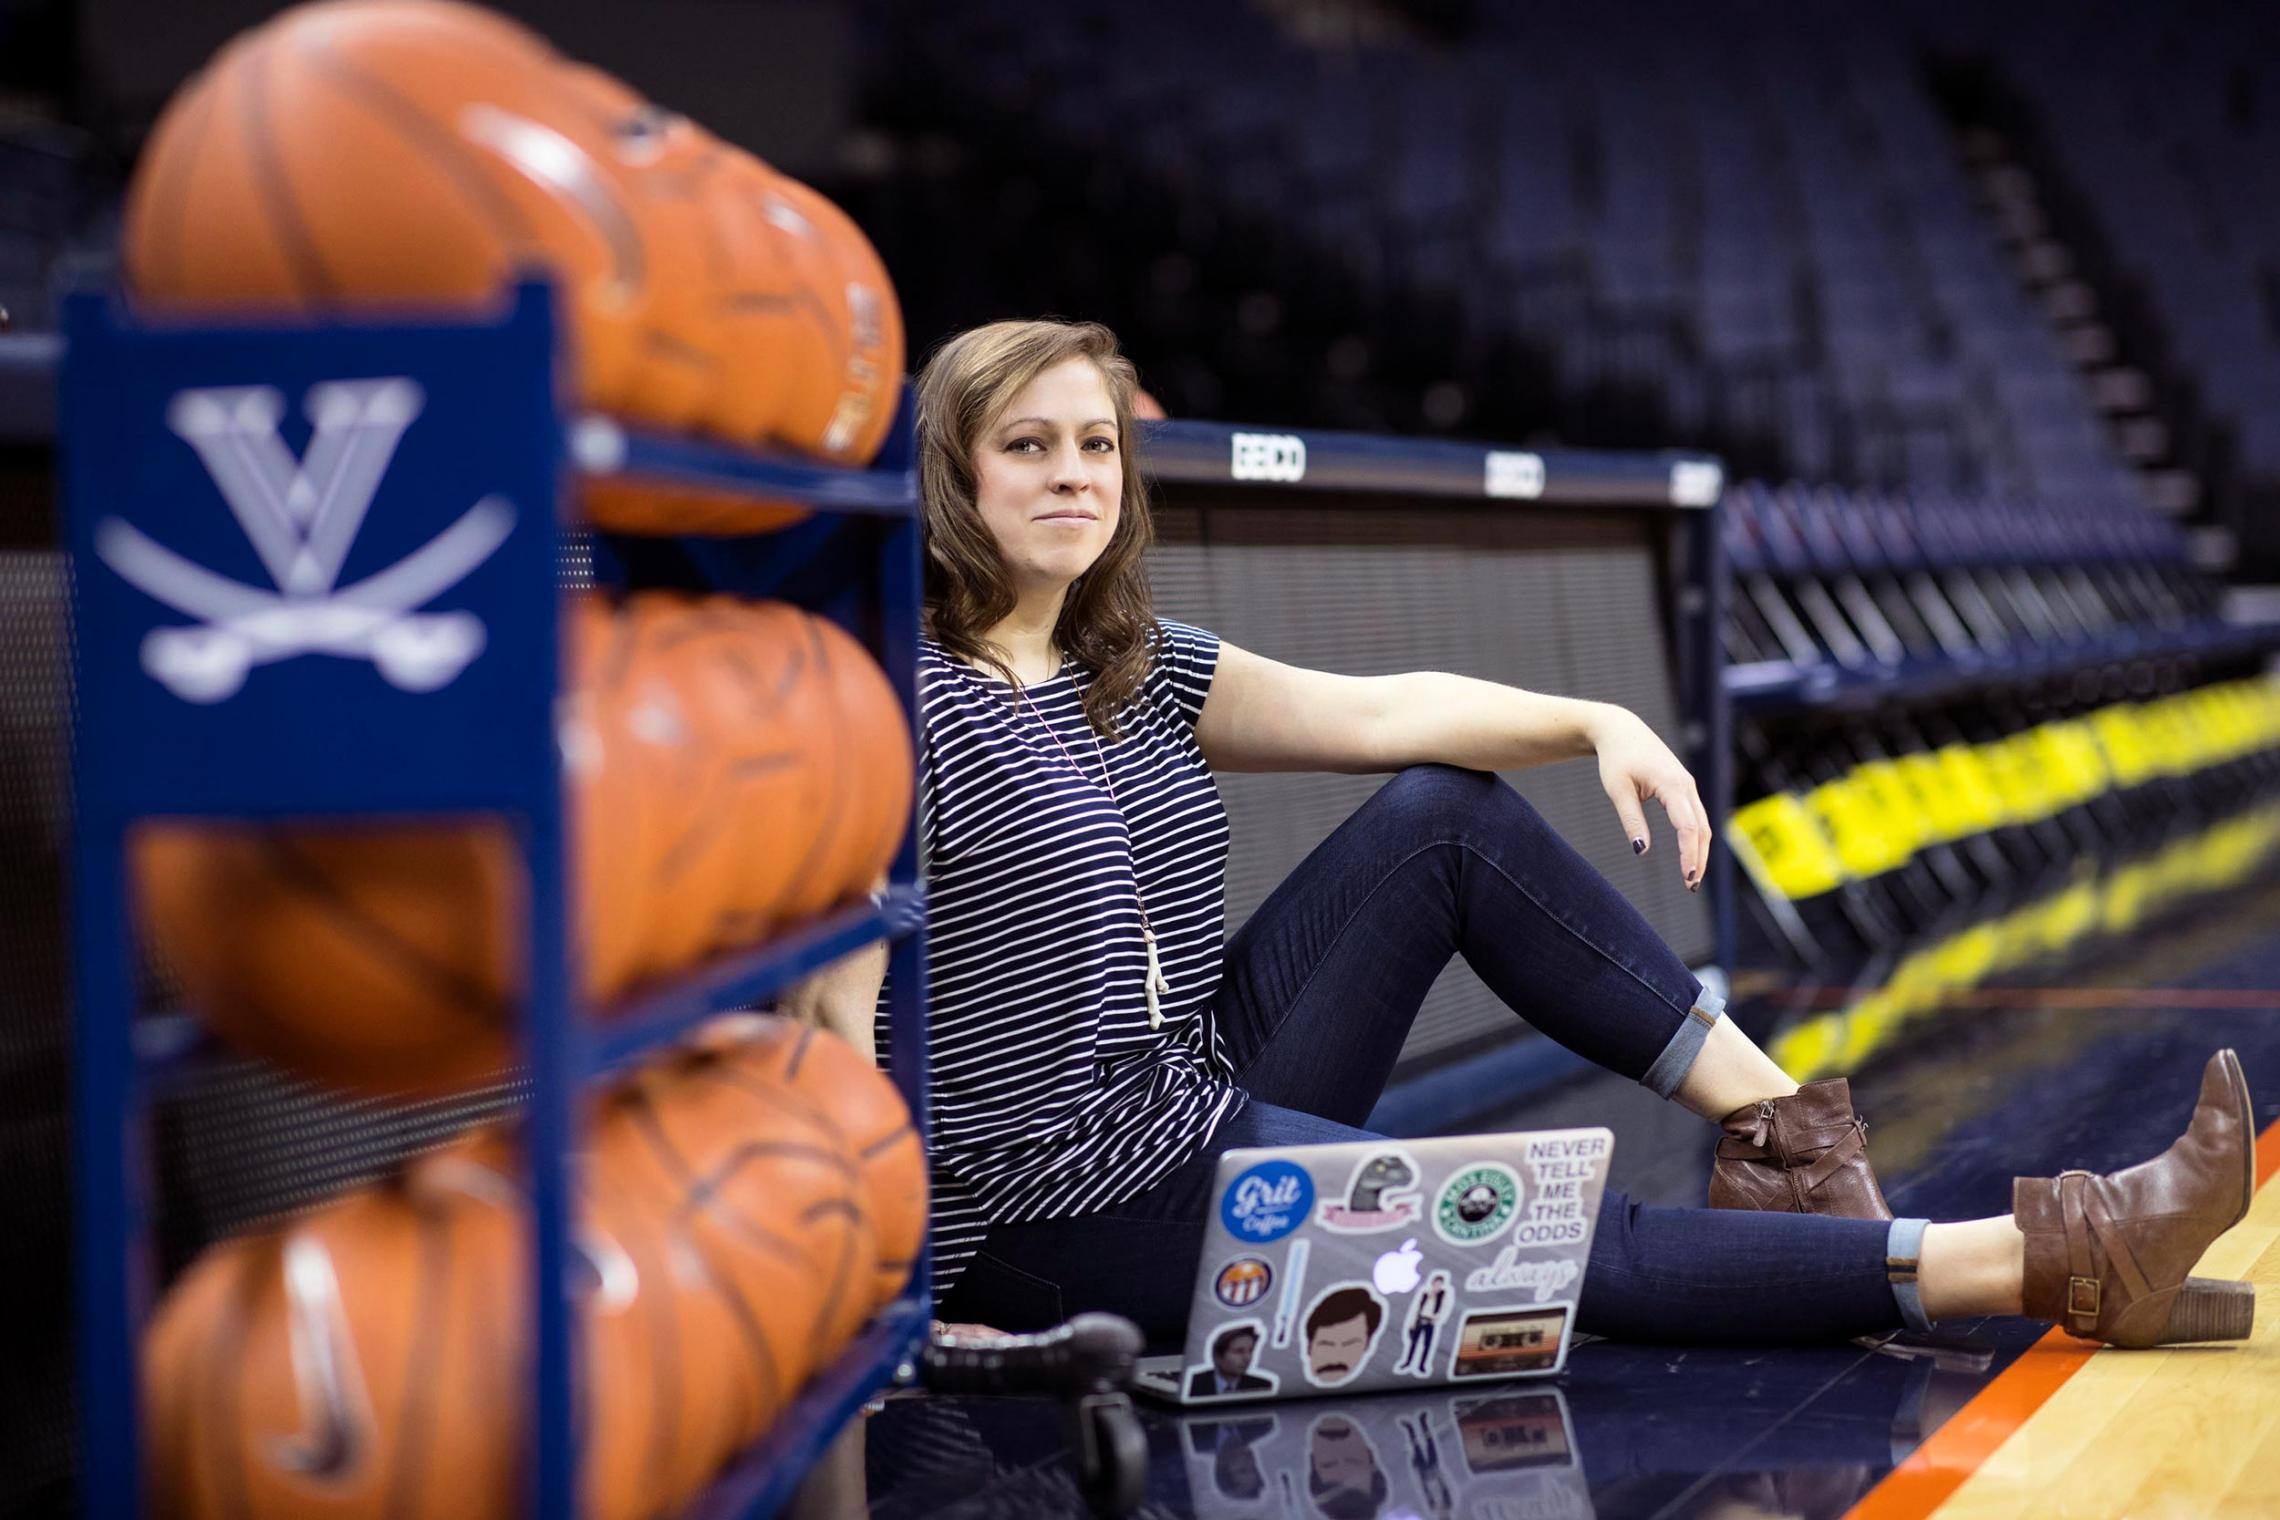 UVA athletics has always held a special place in Caroline Darney's heart. (Photo by Dan Addison, University Communications)